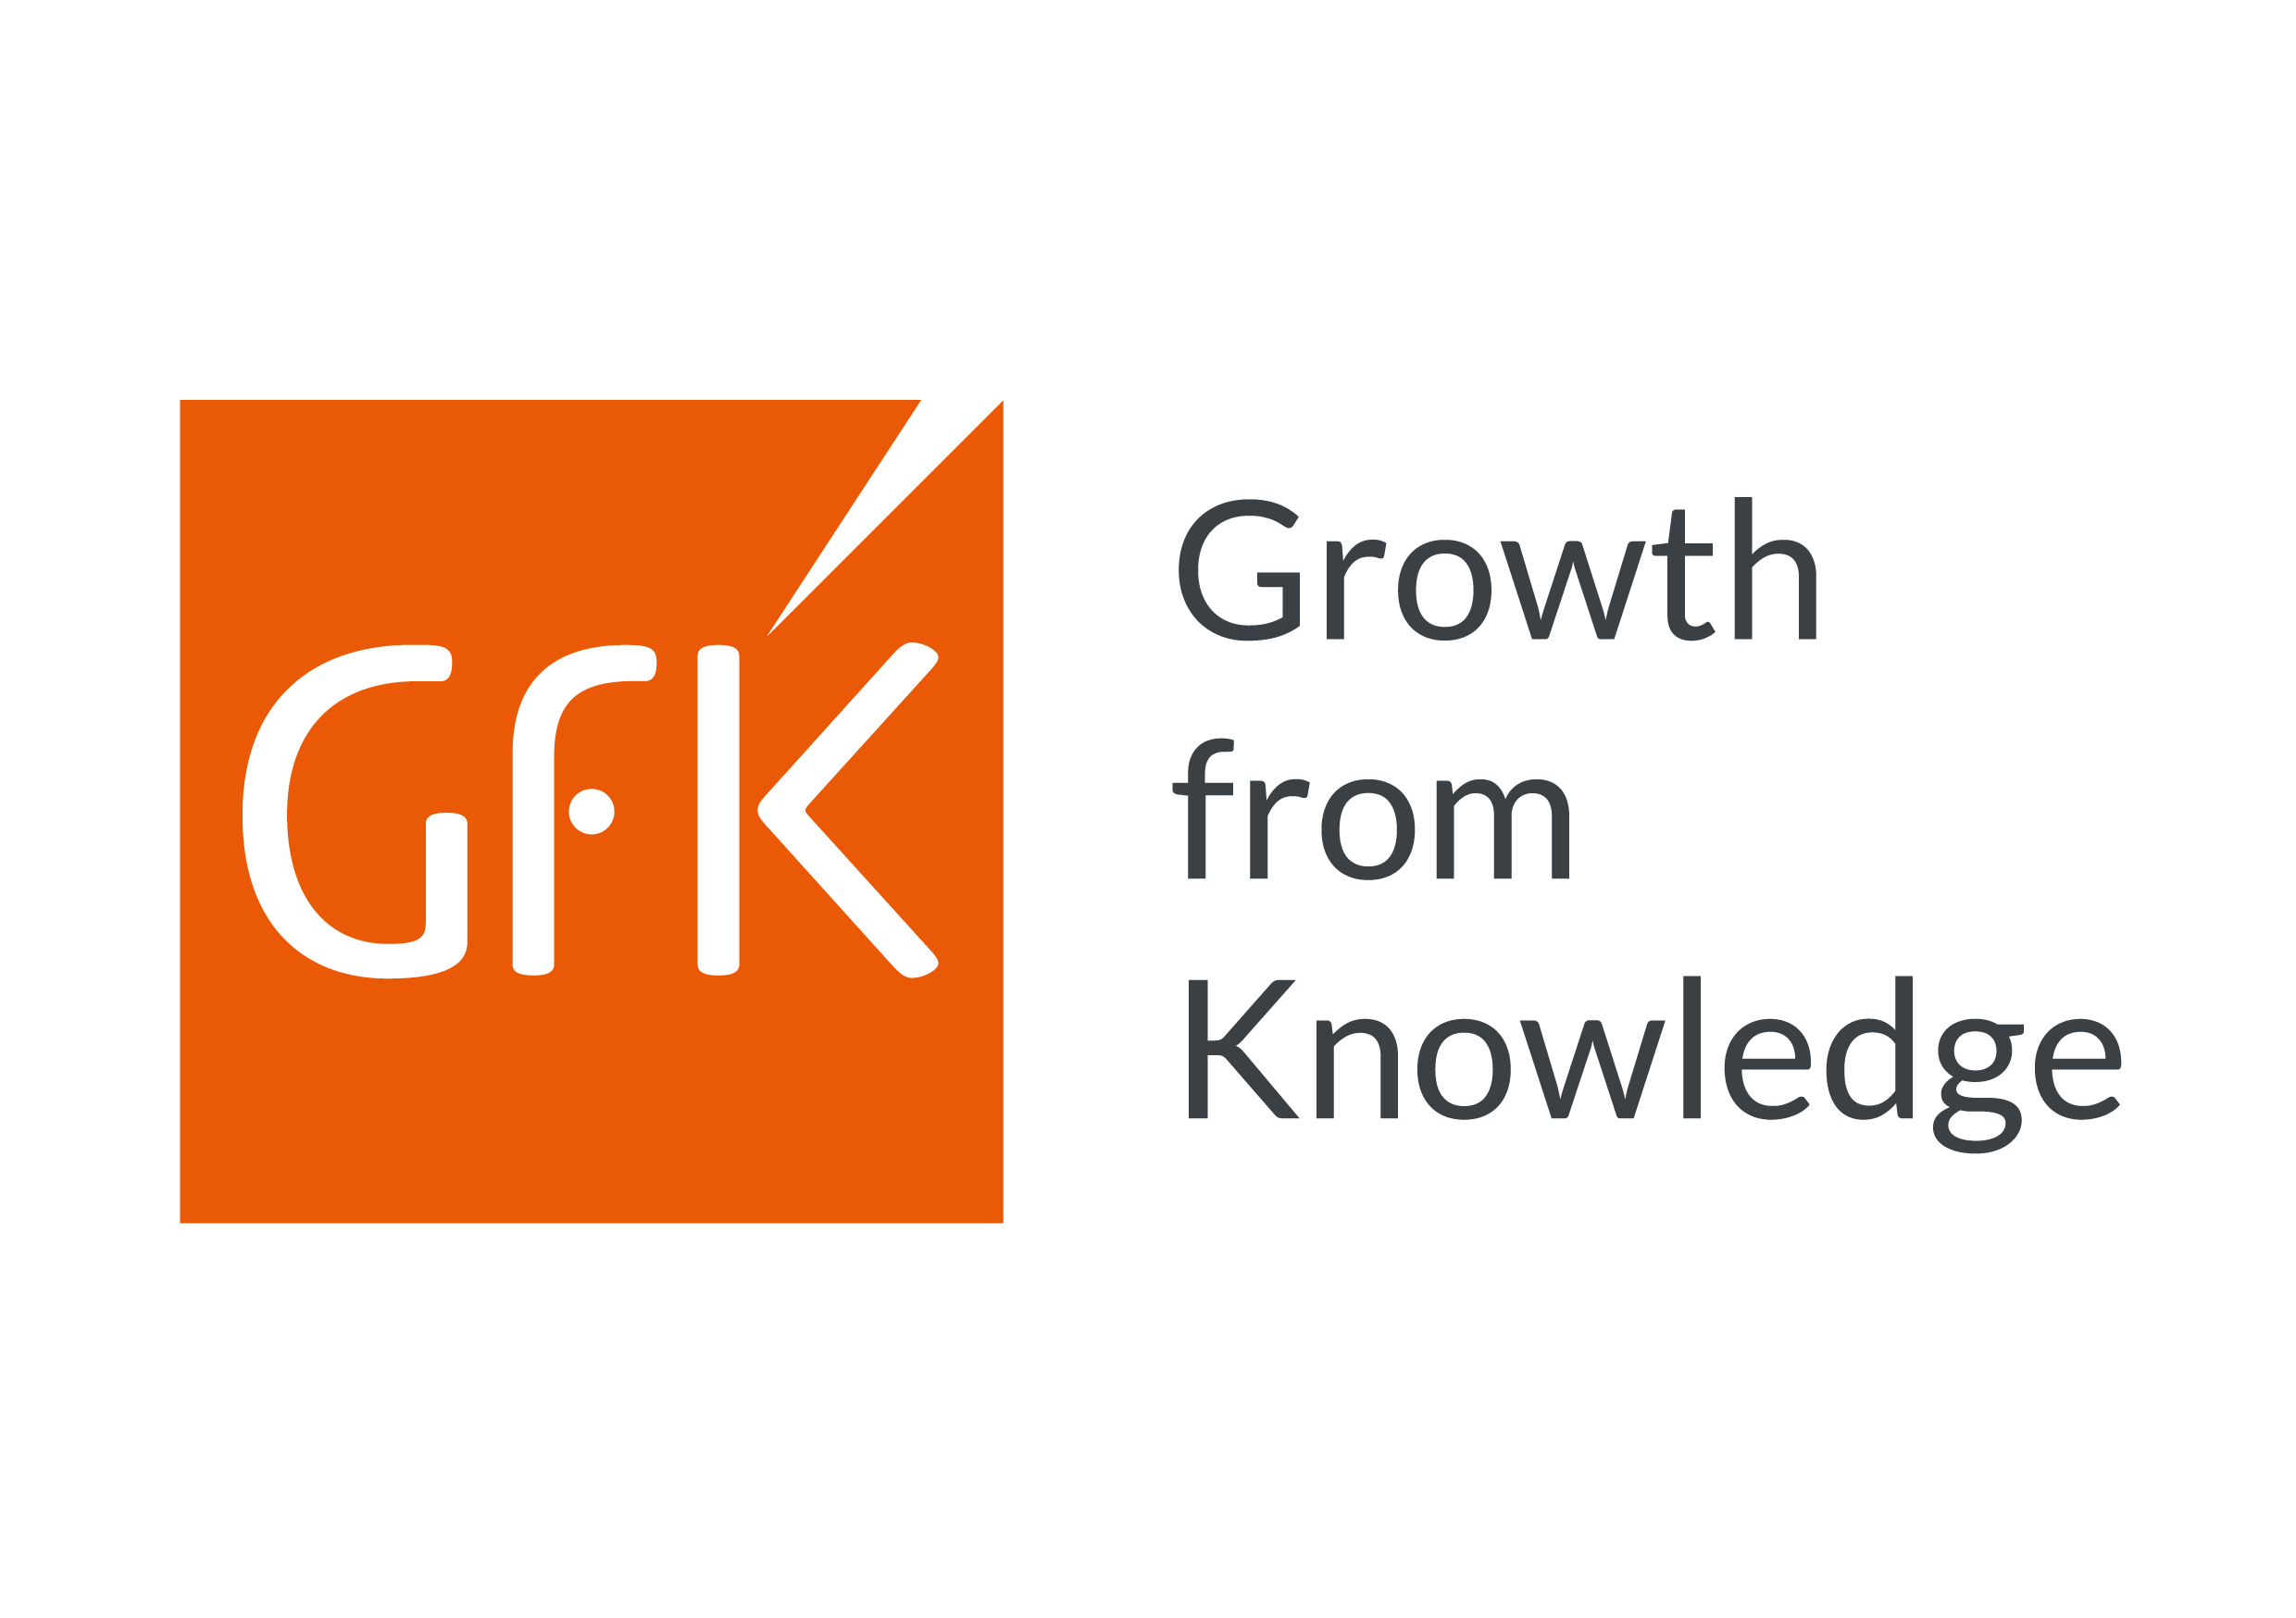 Company logo of GfK